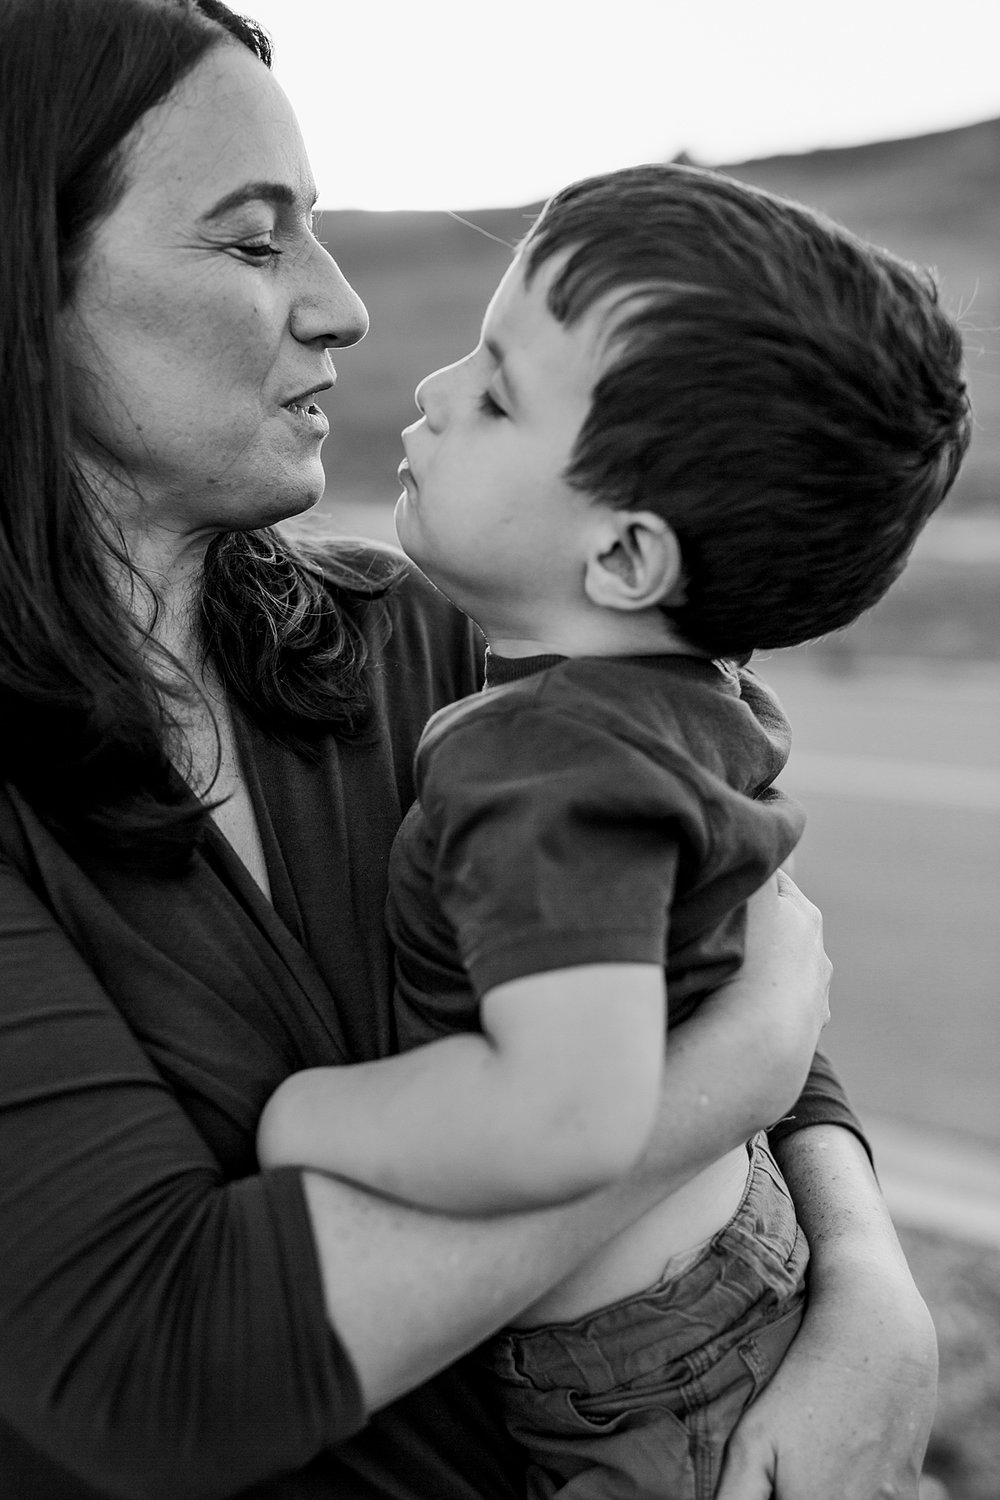 Orange County family photographer. Black and white portrait of mom and her youngest son looking into each others eyes sweetly while embracing each other during family photo shoot at Quail Hill